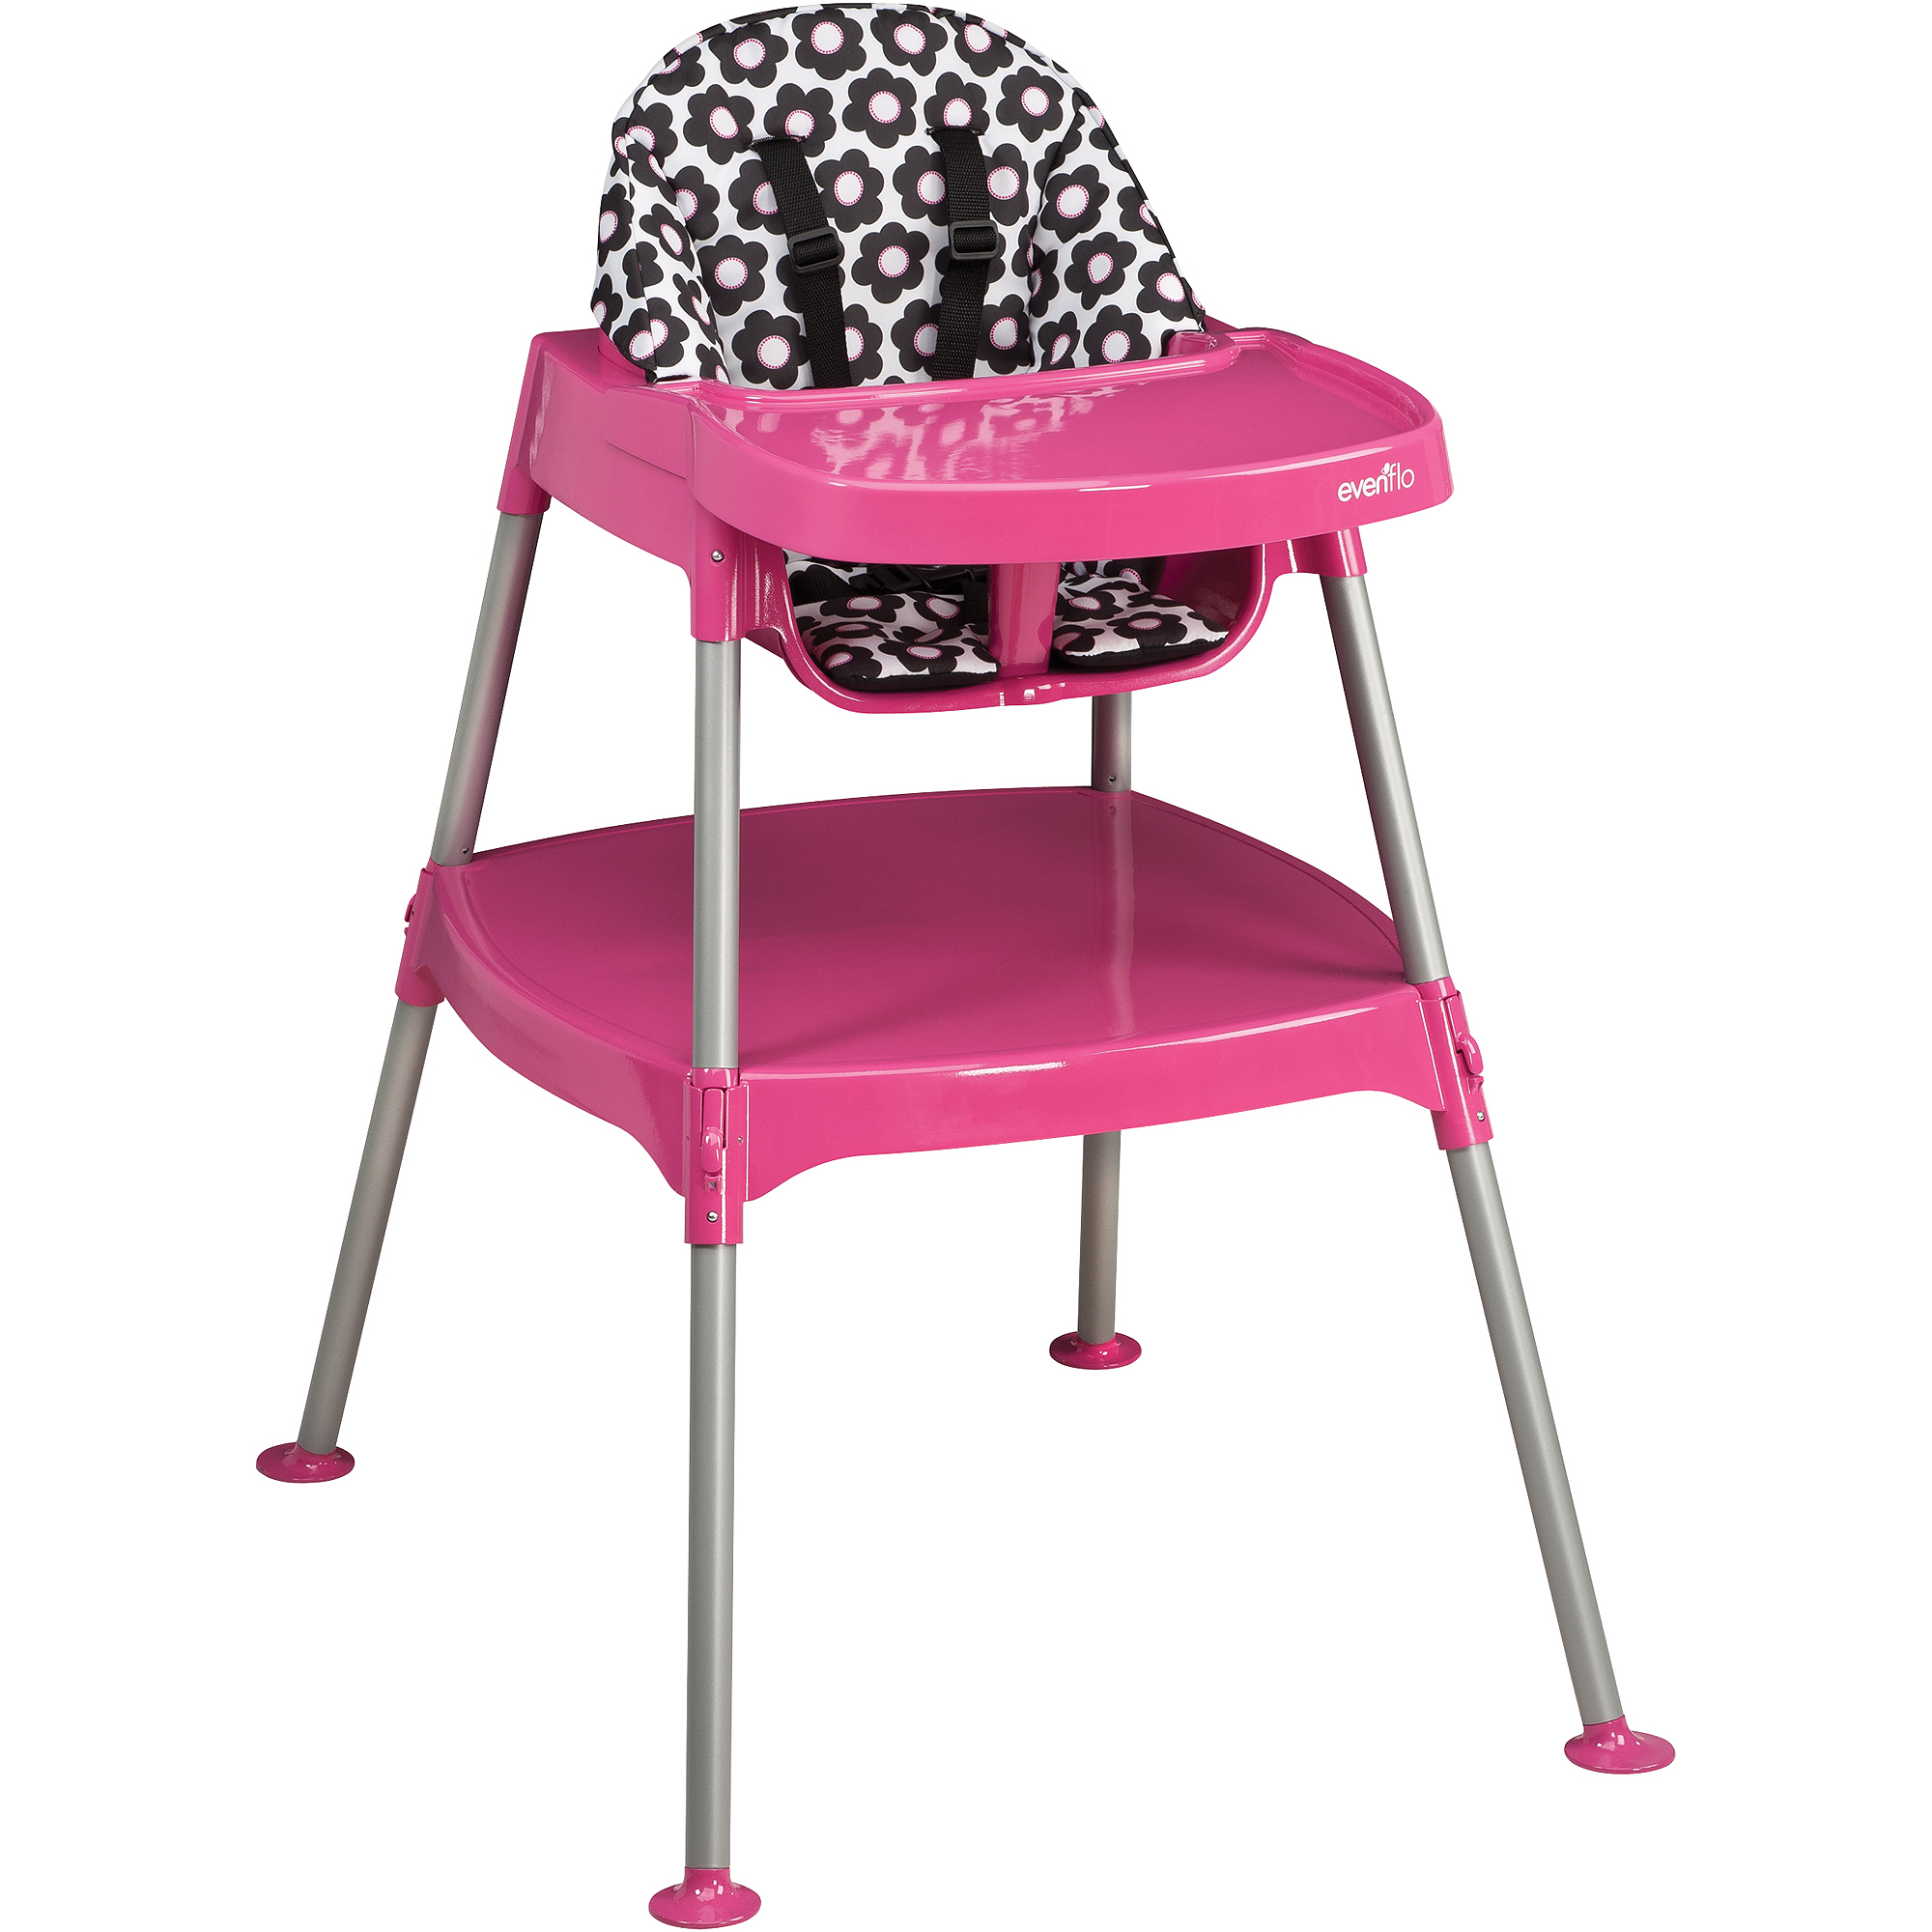 Evenflo - Convertible High Chair, Marianna